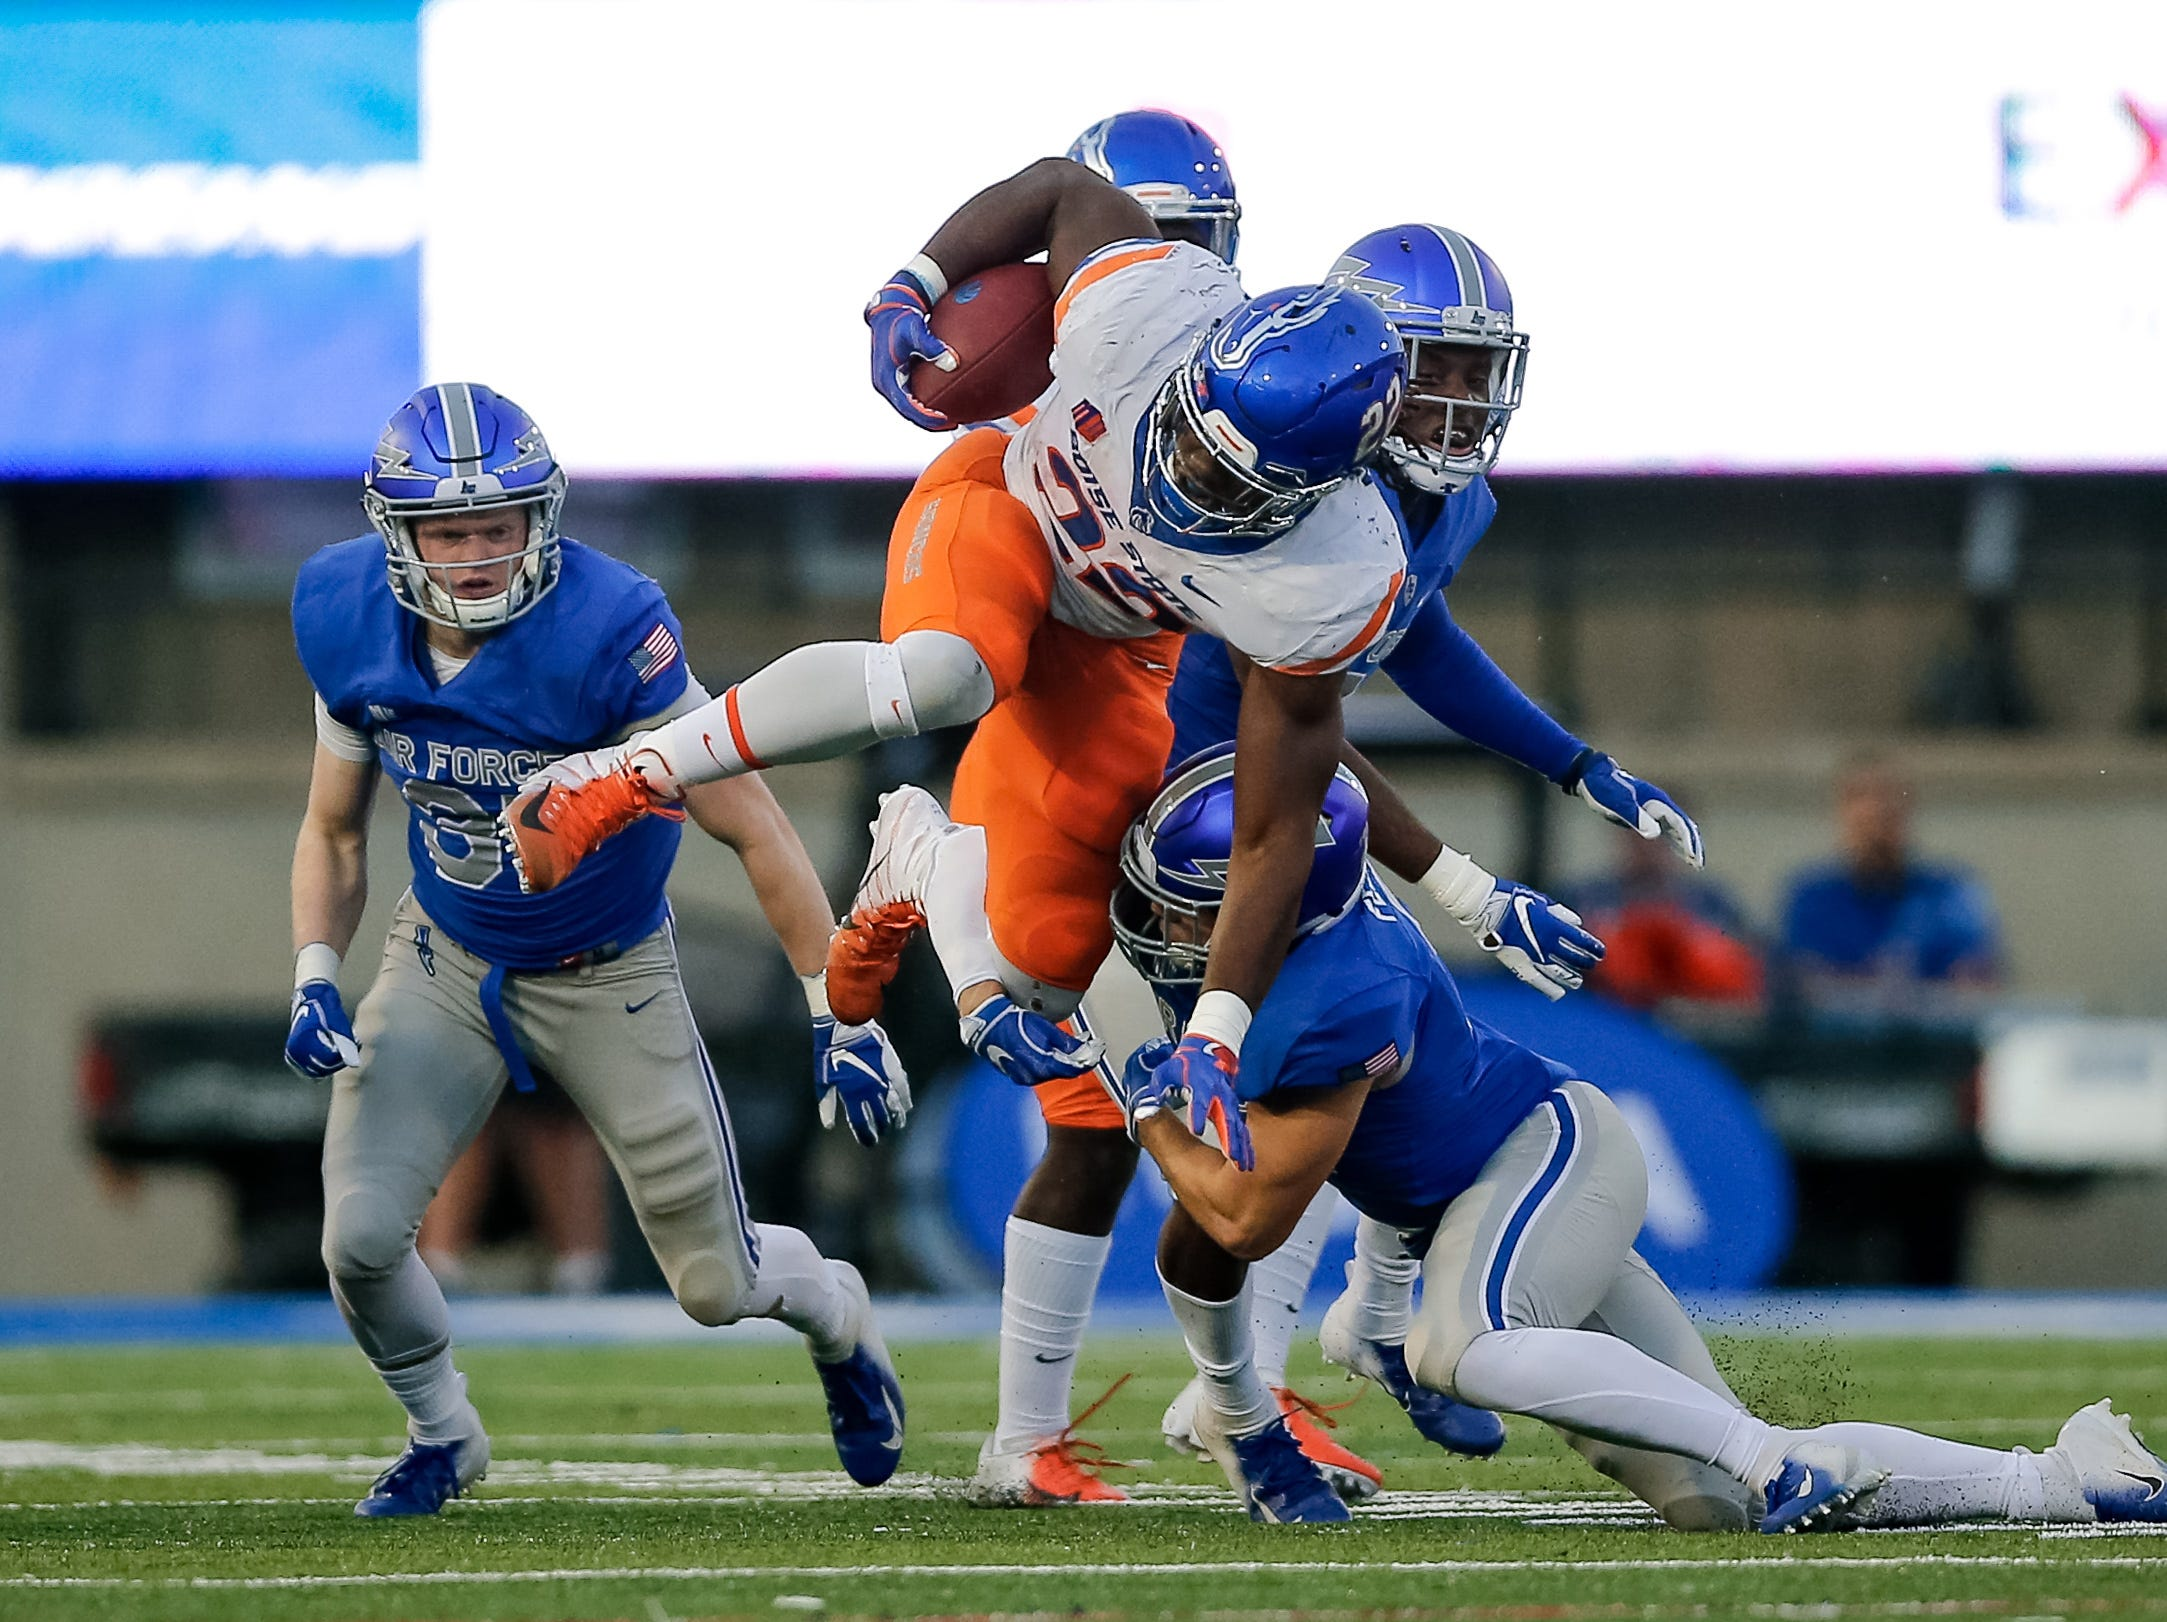 Boise State Broncos running back Alexander Mattison (22) is tackled by Air Force Falcons defensive back Jeremy Fejedelem (2) in the second quarter at Falcon Stadium.